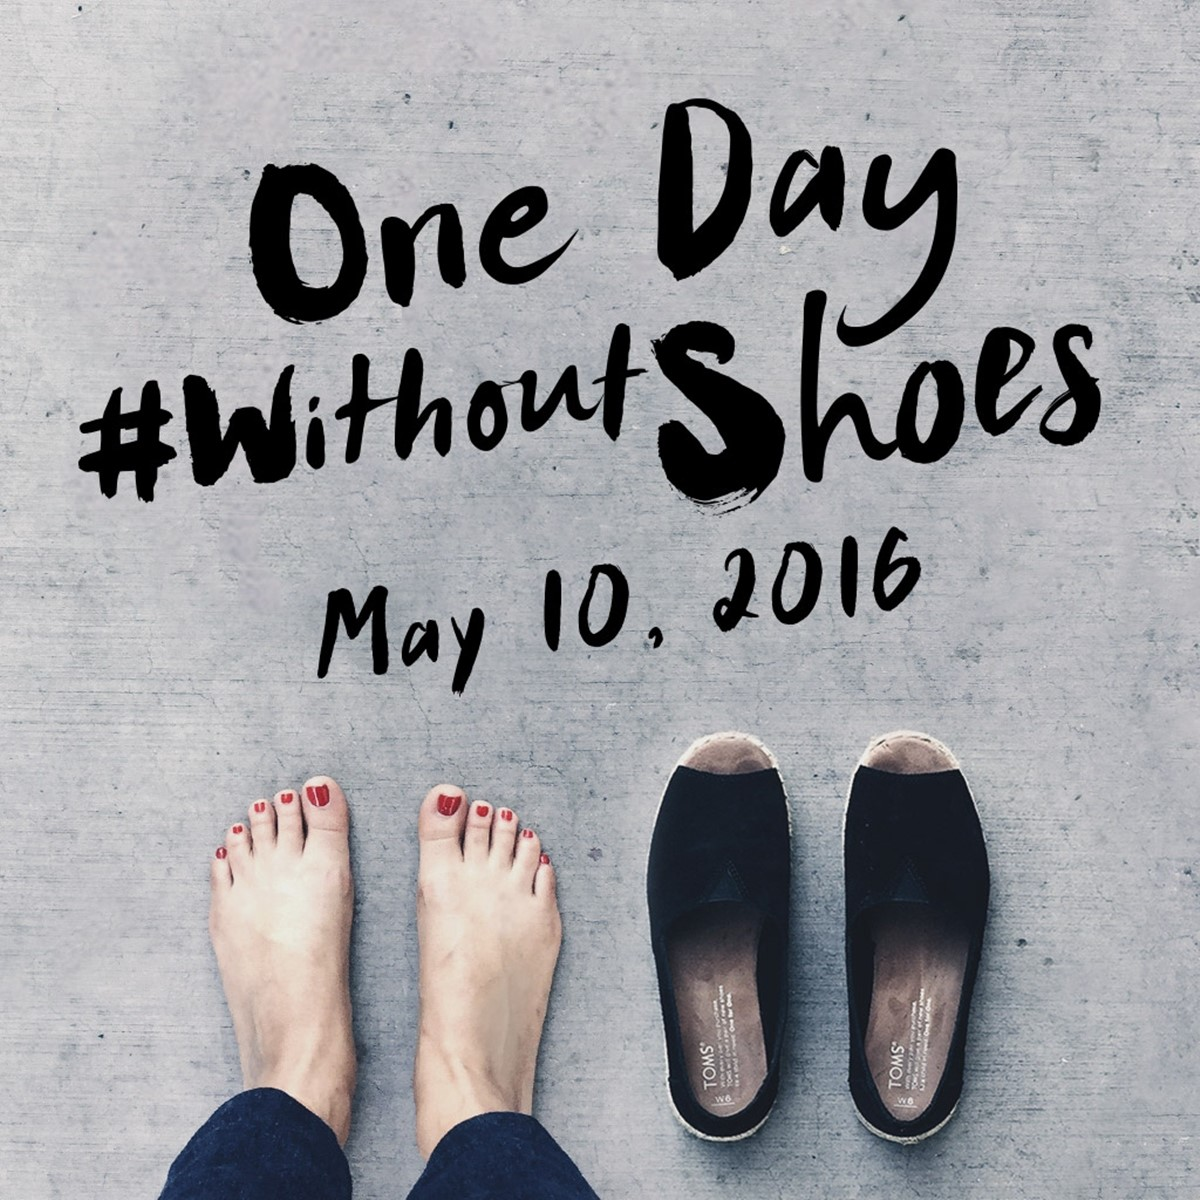 Toms marketing campaign: One day without shoes